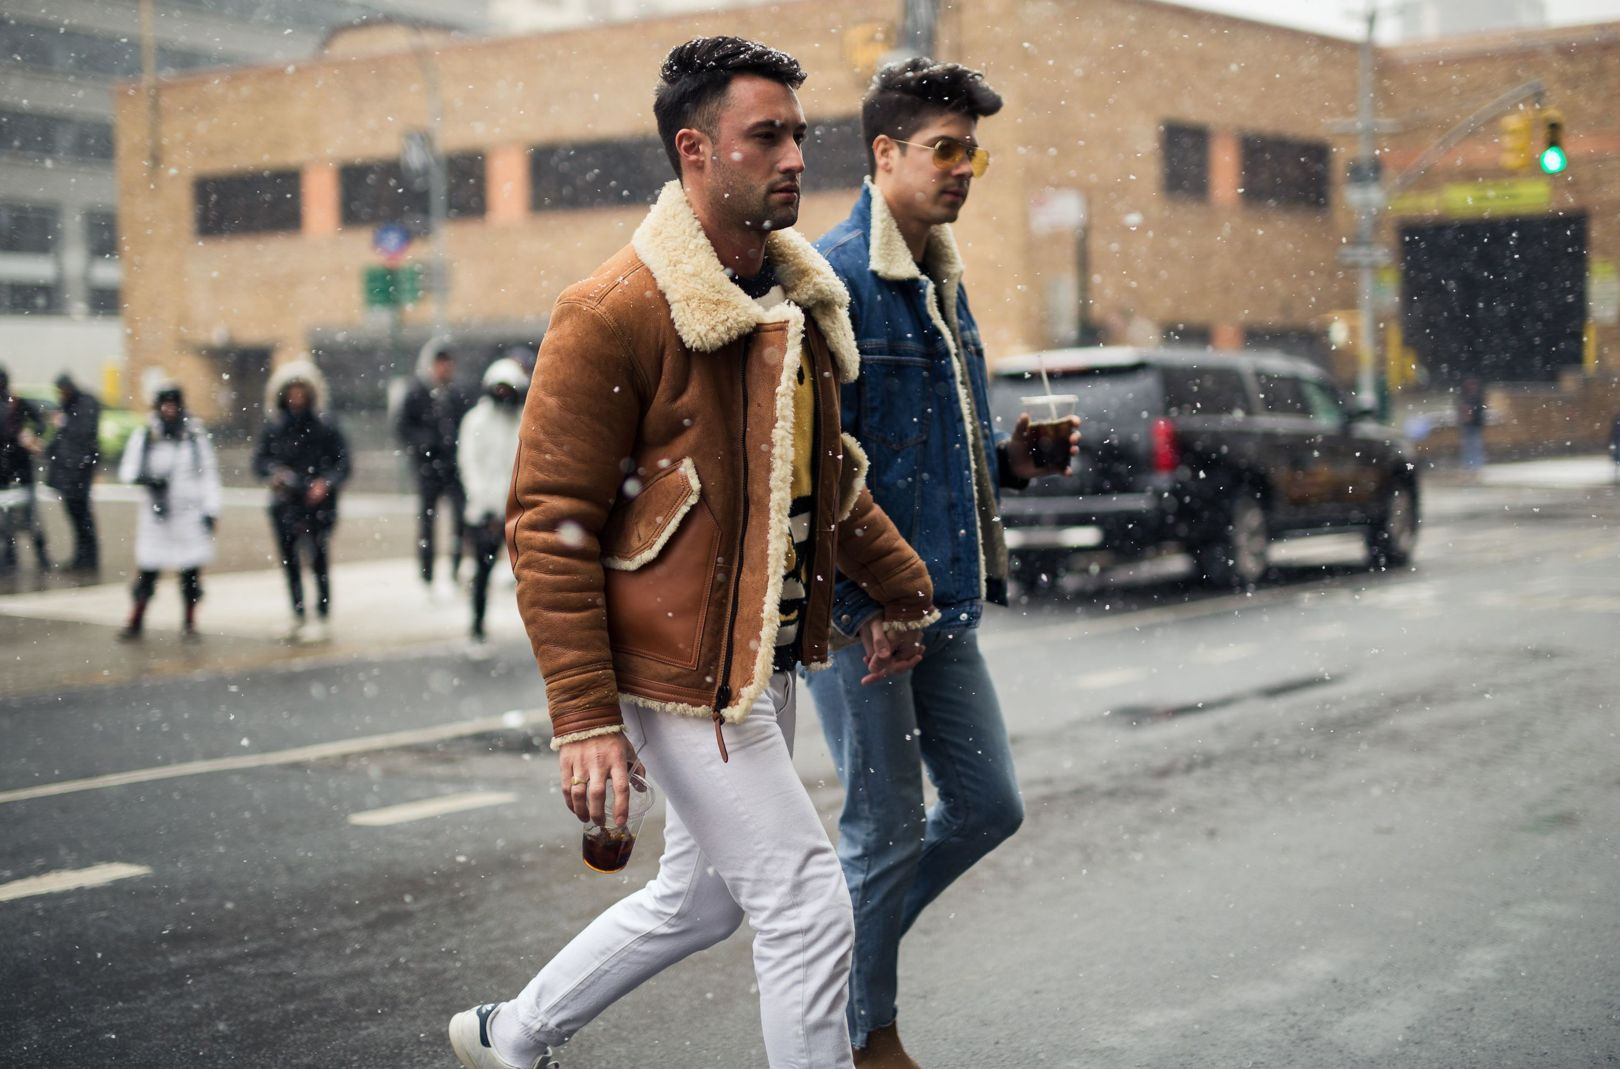 New York City, the last stop of the Men's weeks. After Paris and the Haute Couture week, fashionable guys are hitting the streets for a last time. Here is what we liked if we're talking…